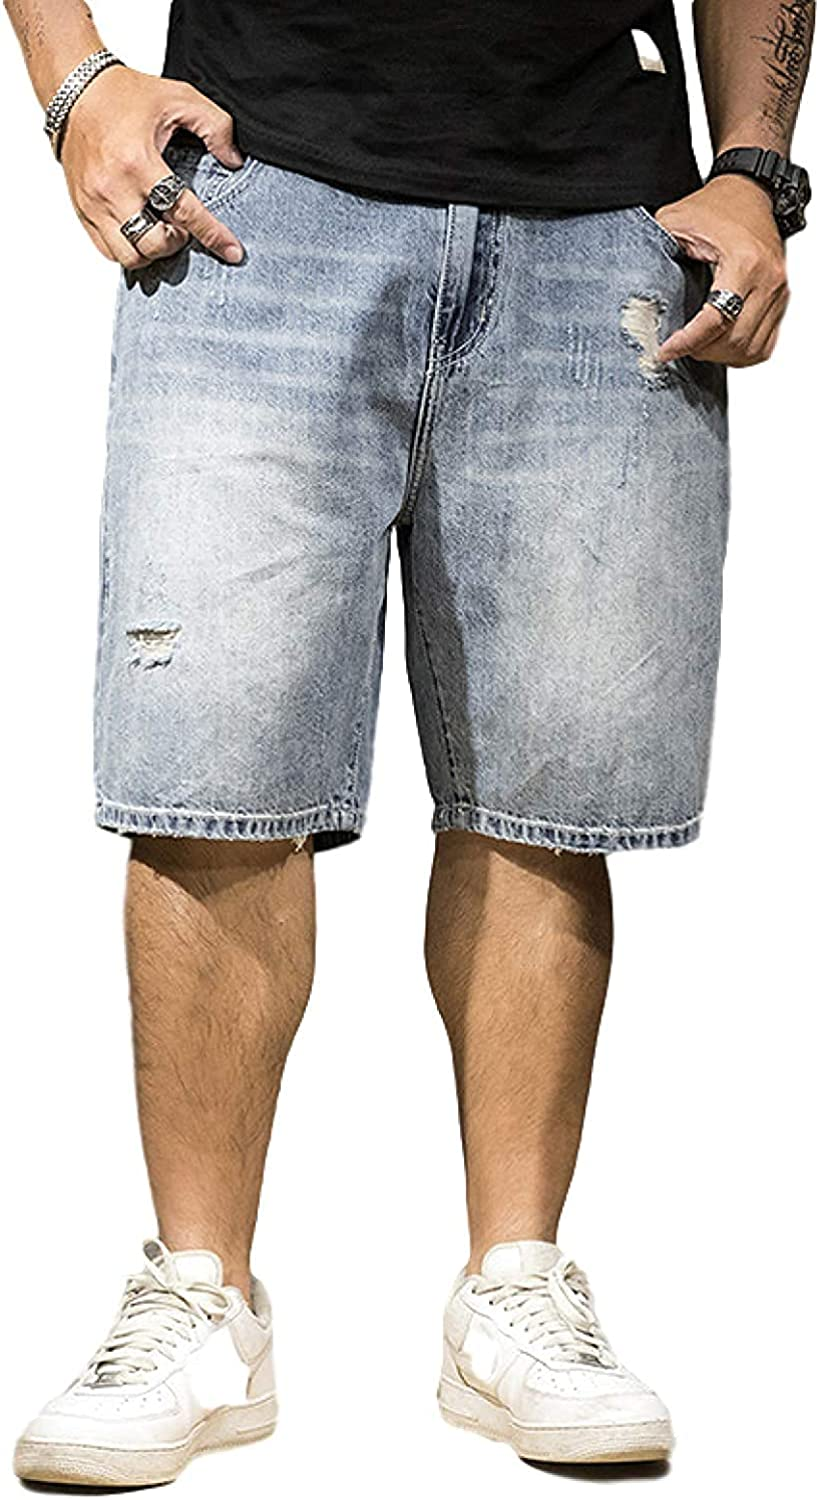 Andrea Spence Mens Denim Shorts, Slim Fit Distressed Ripped Half Jeans Pant, Relaxed